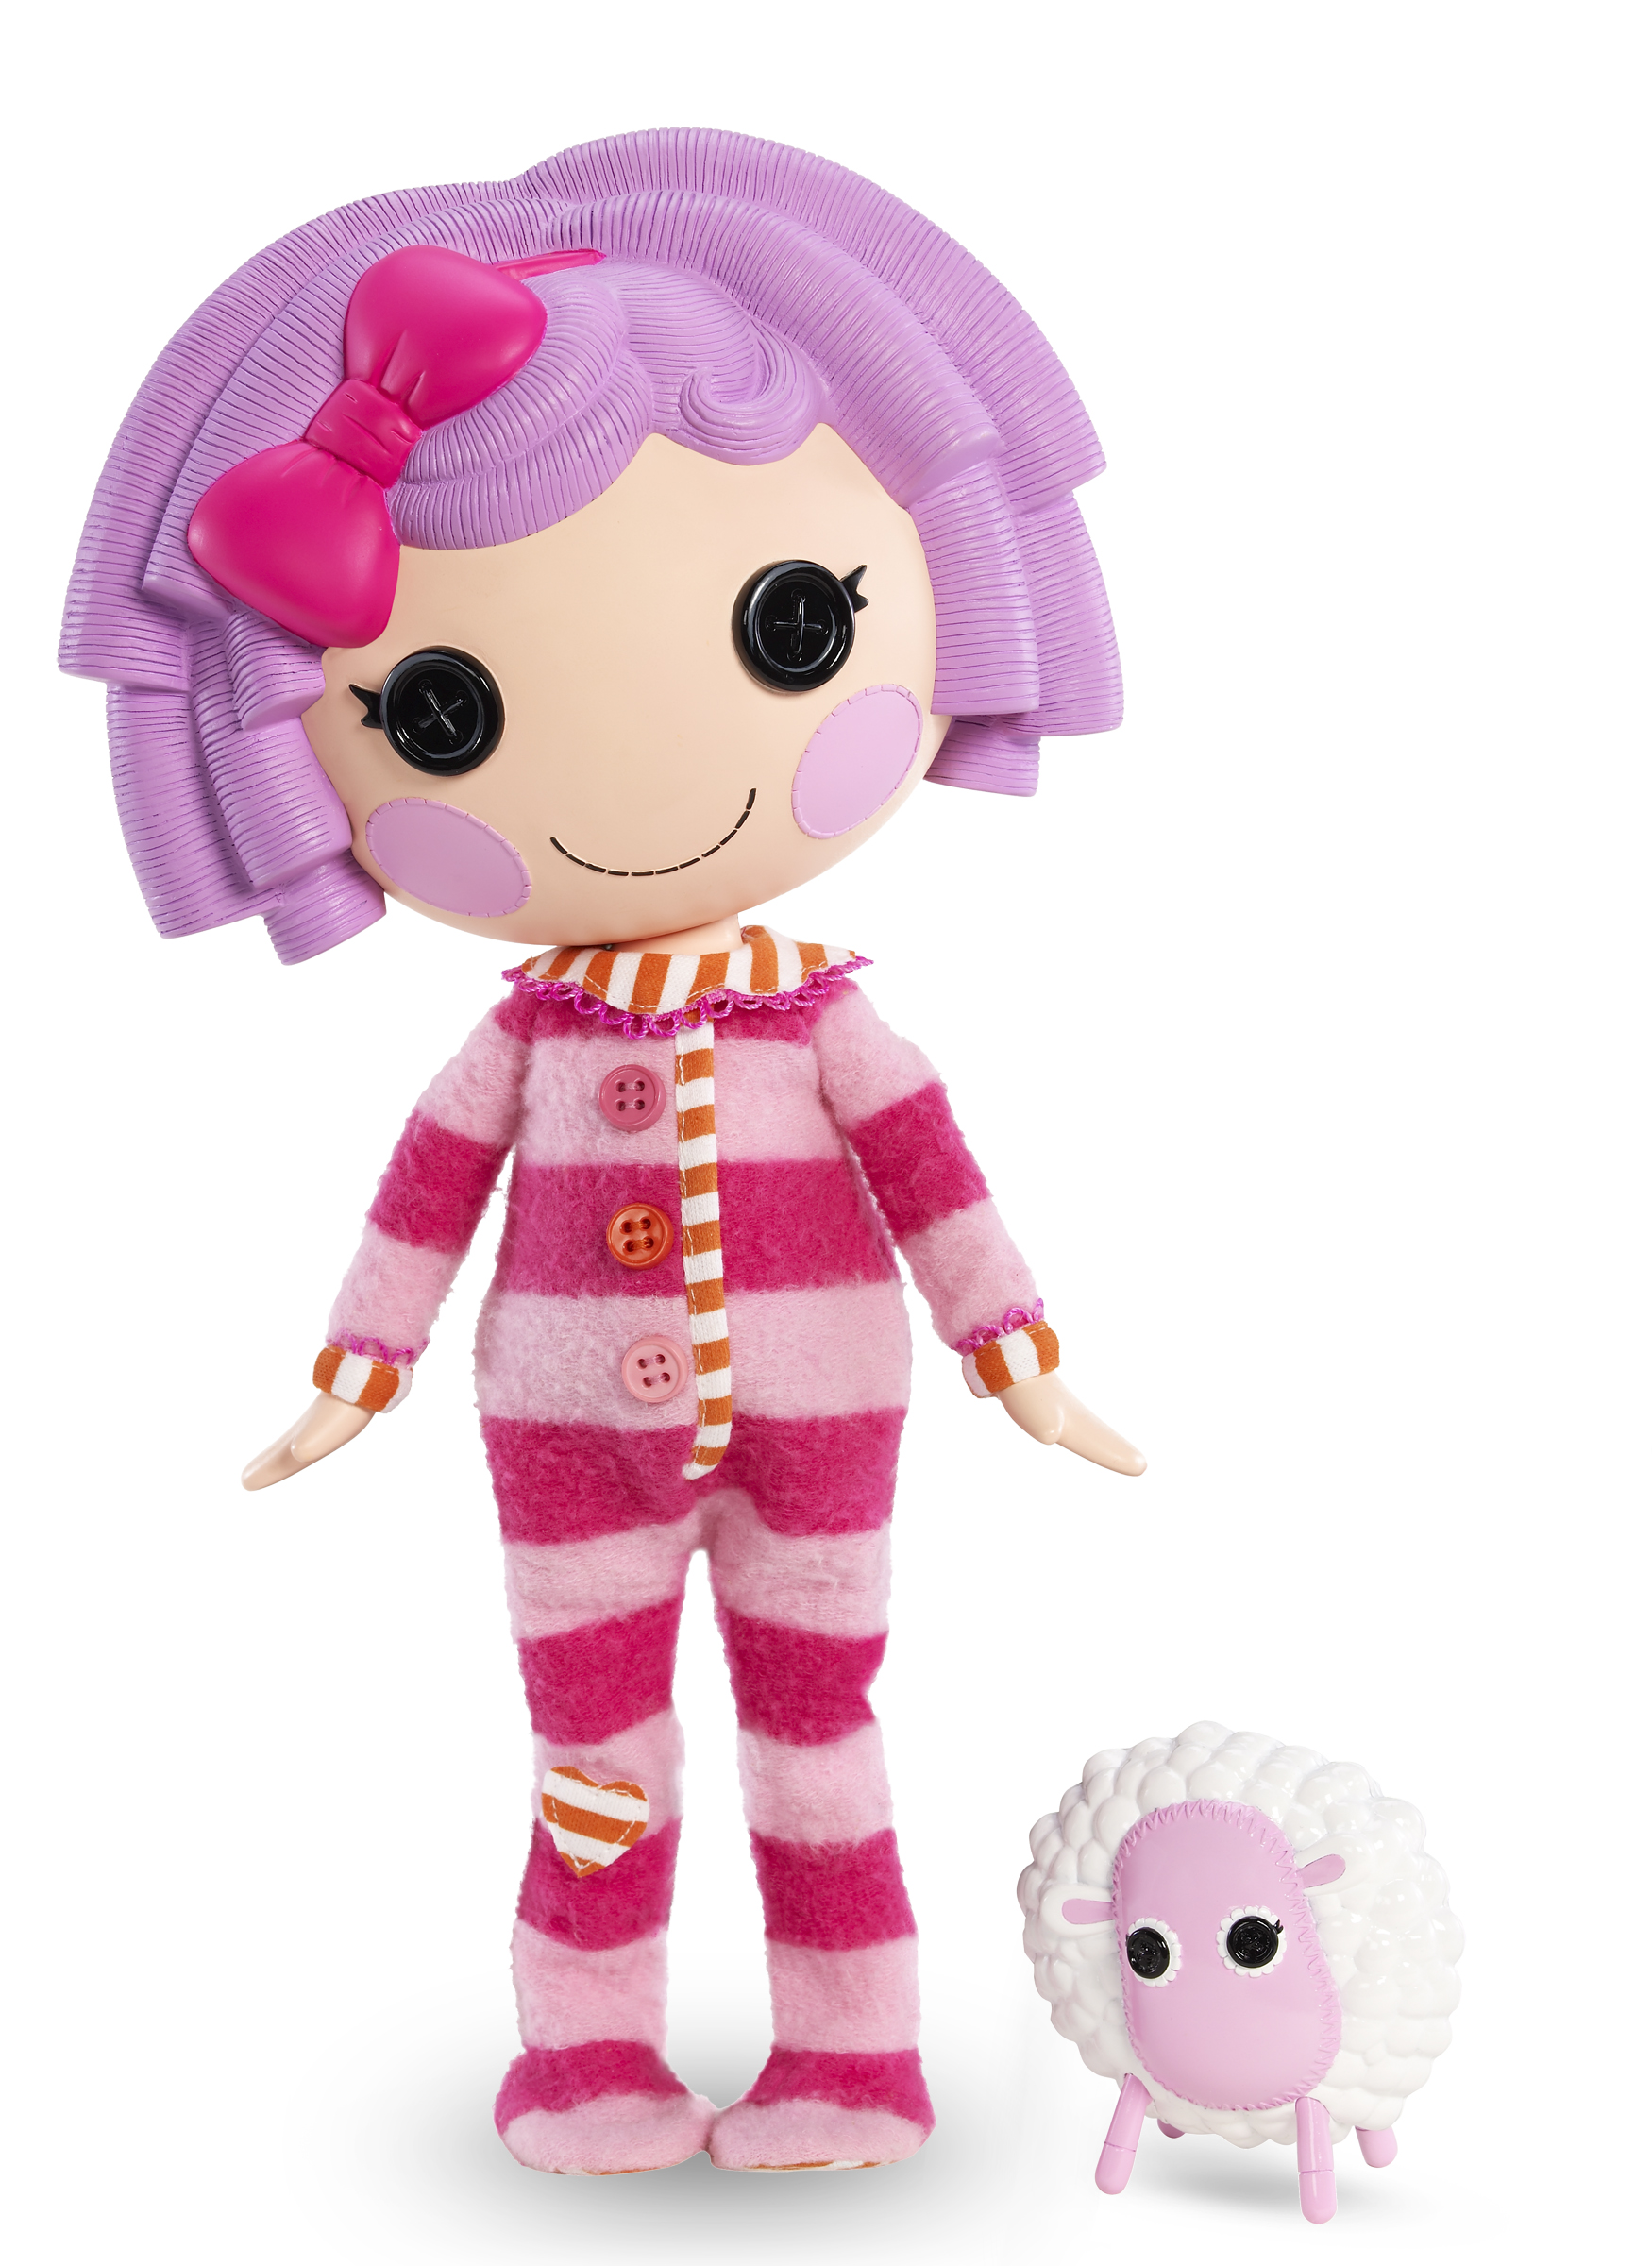 Lalaloopsy Images Lalaloopsy Dolls Hd Wallpaper And